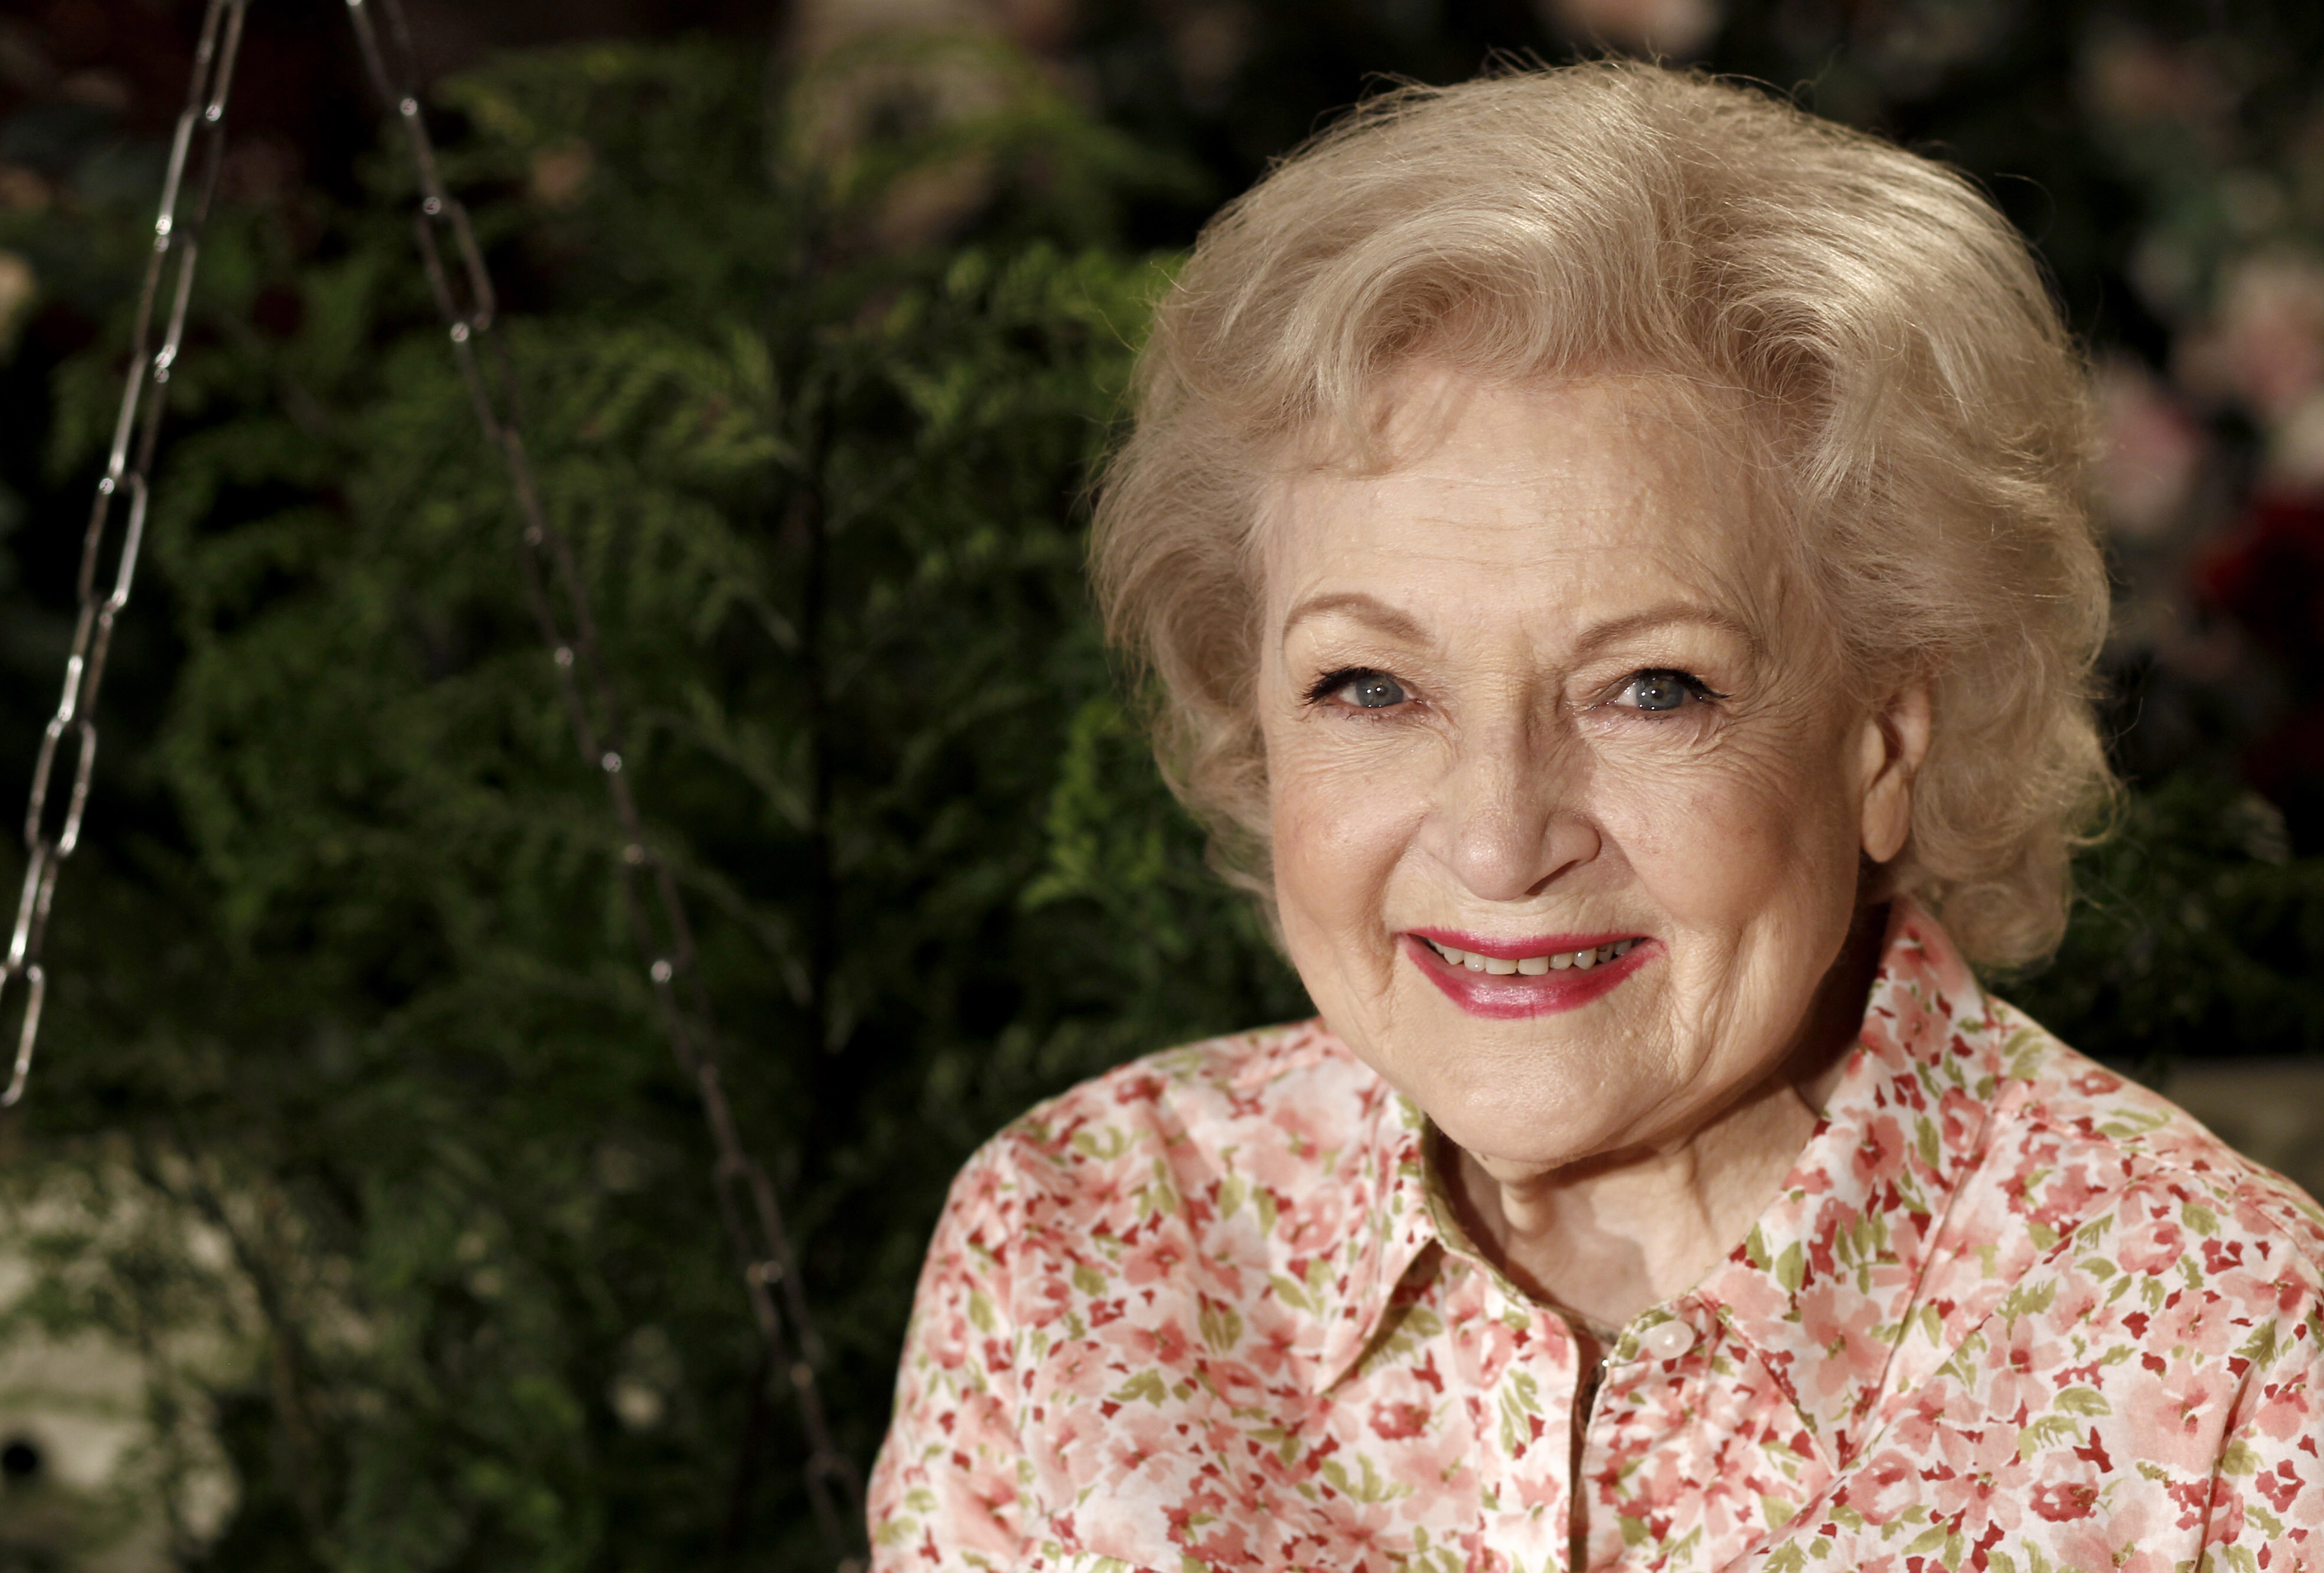 FILE - Actress Betty White poses for a portrait in Los Angeles on June 9, 2010. White will turn 99 on Sunday, Jan. 17. Photo: AP